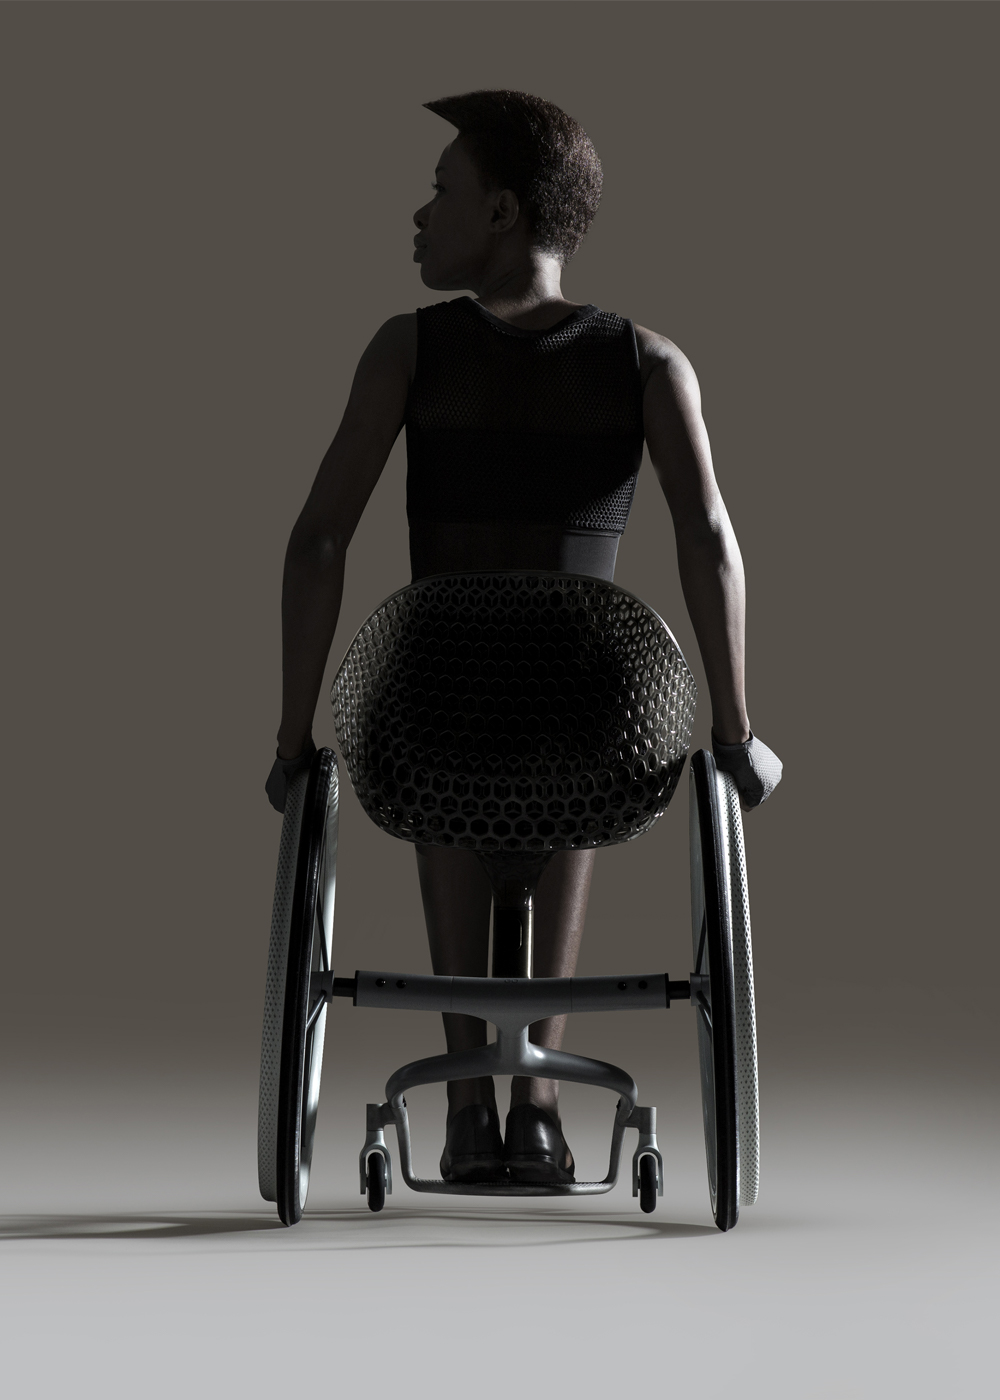 benjamin-hubert-materialise-go-wheelchair-culture-commerce